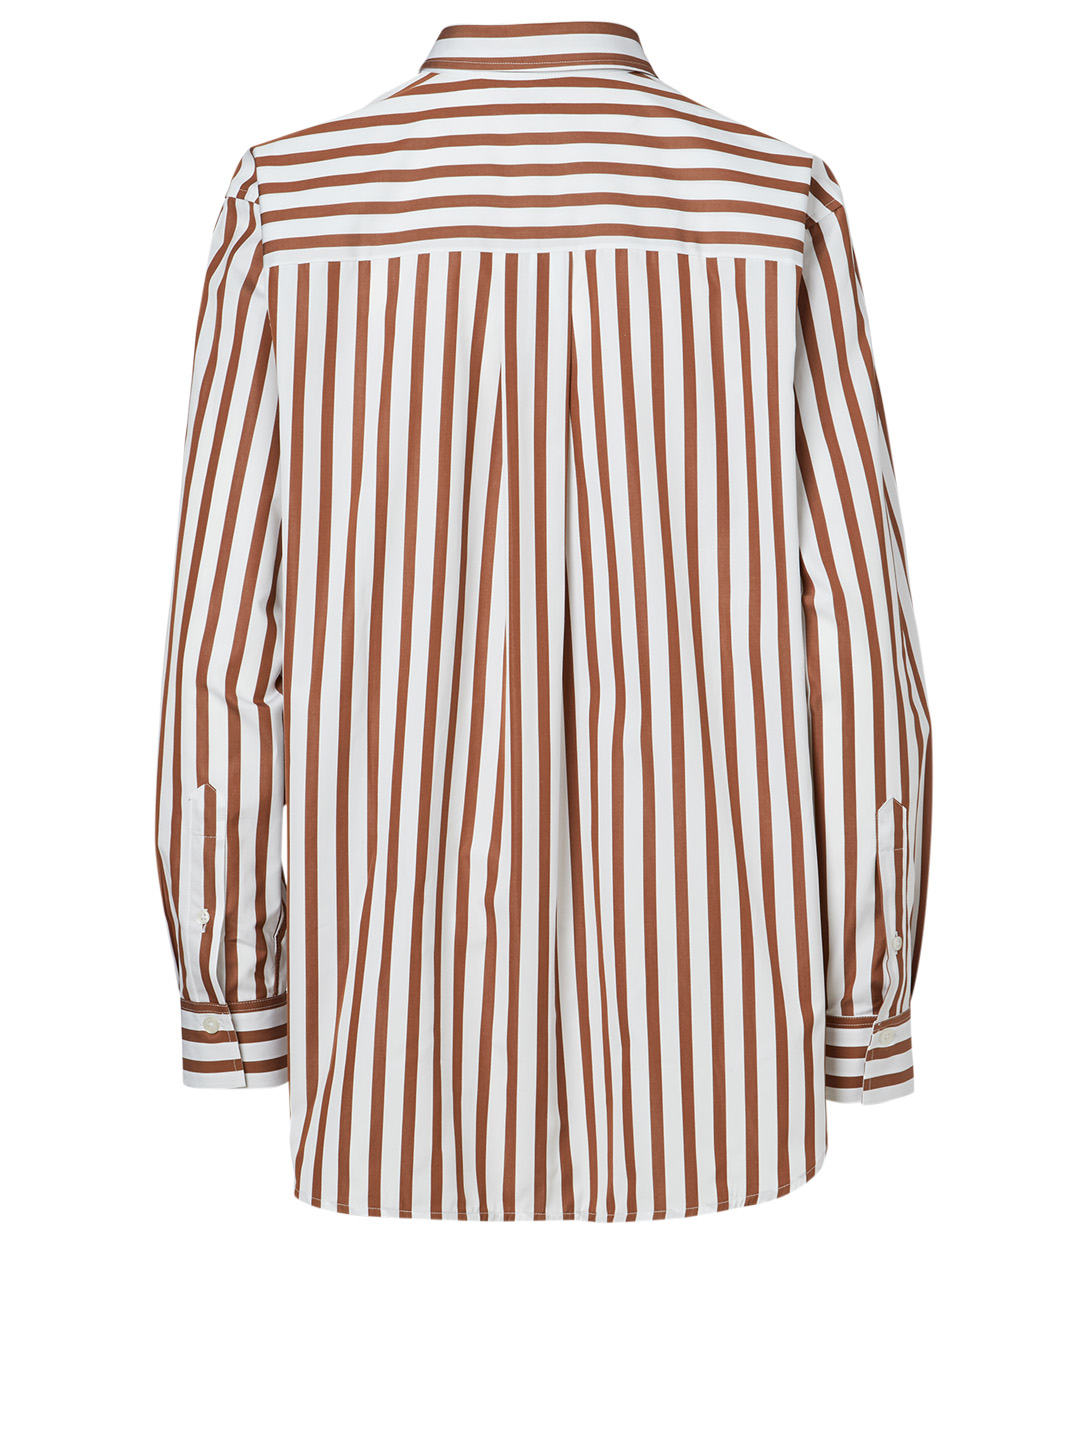 TOTÊME Capri Cotton Shirt In Stripe Print Women's White